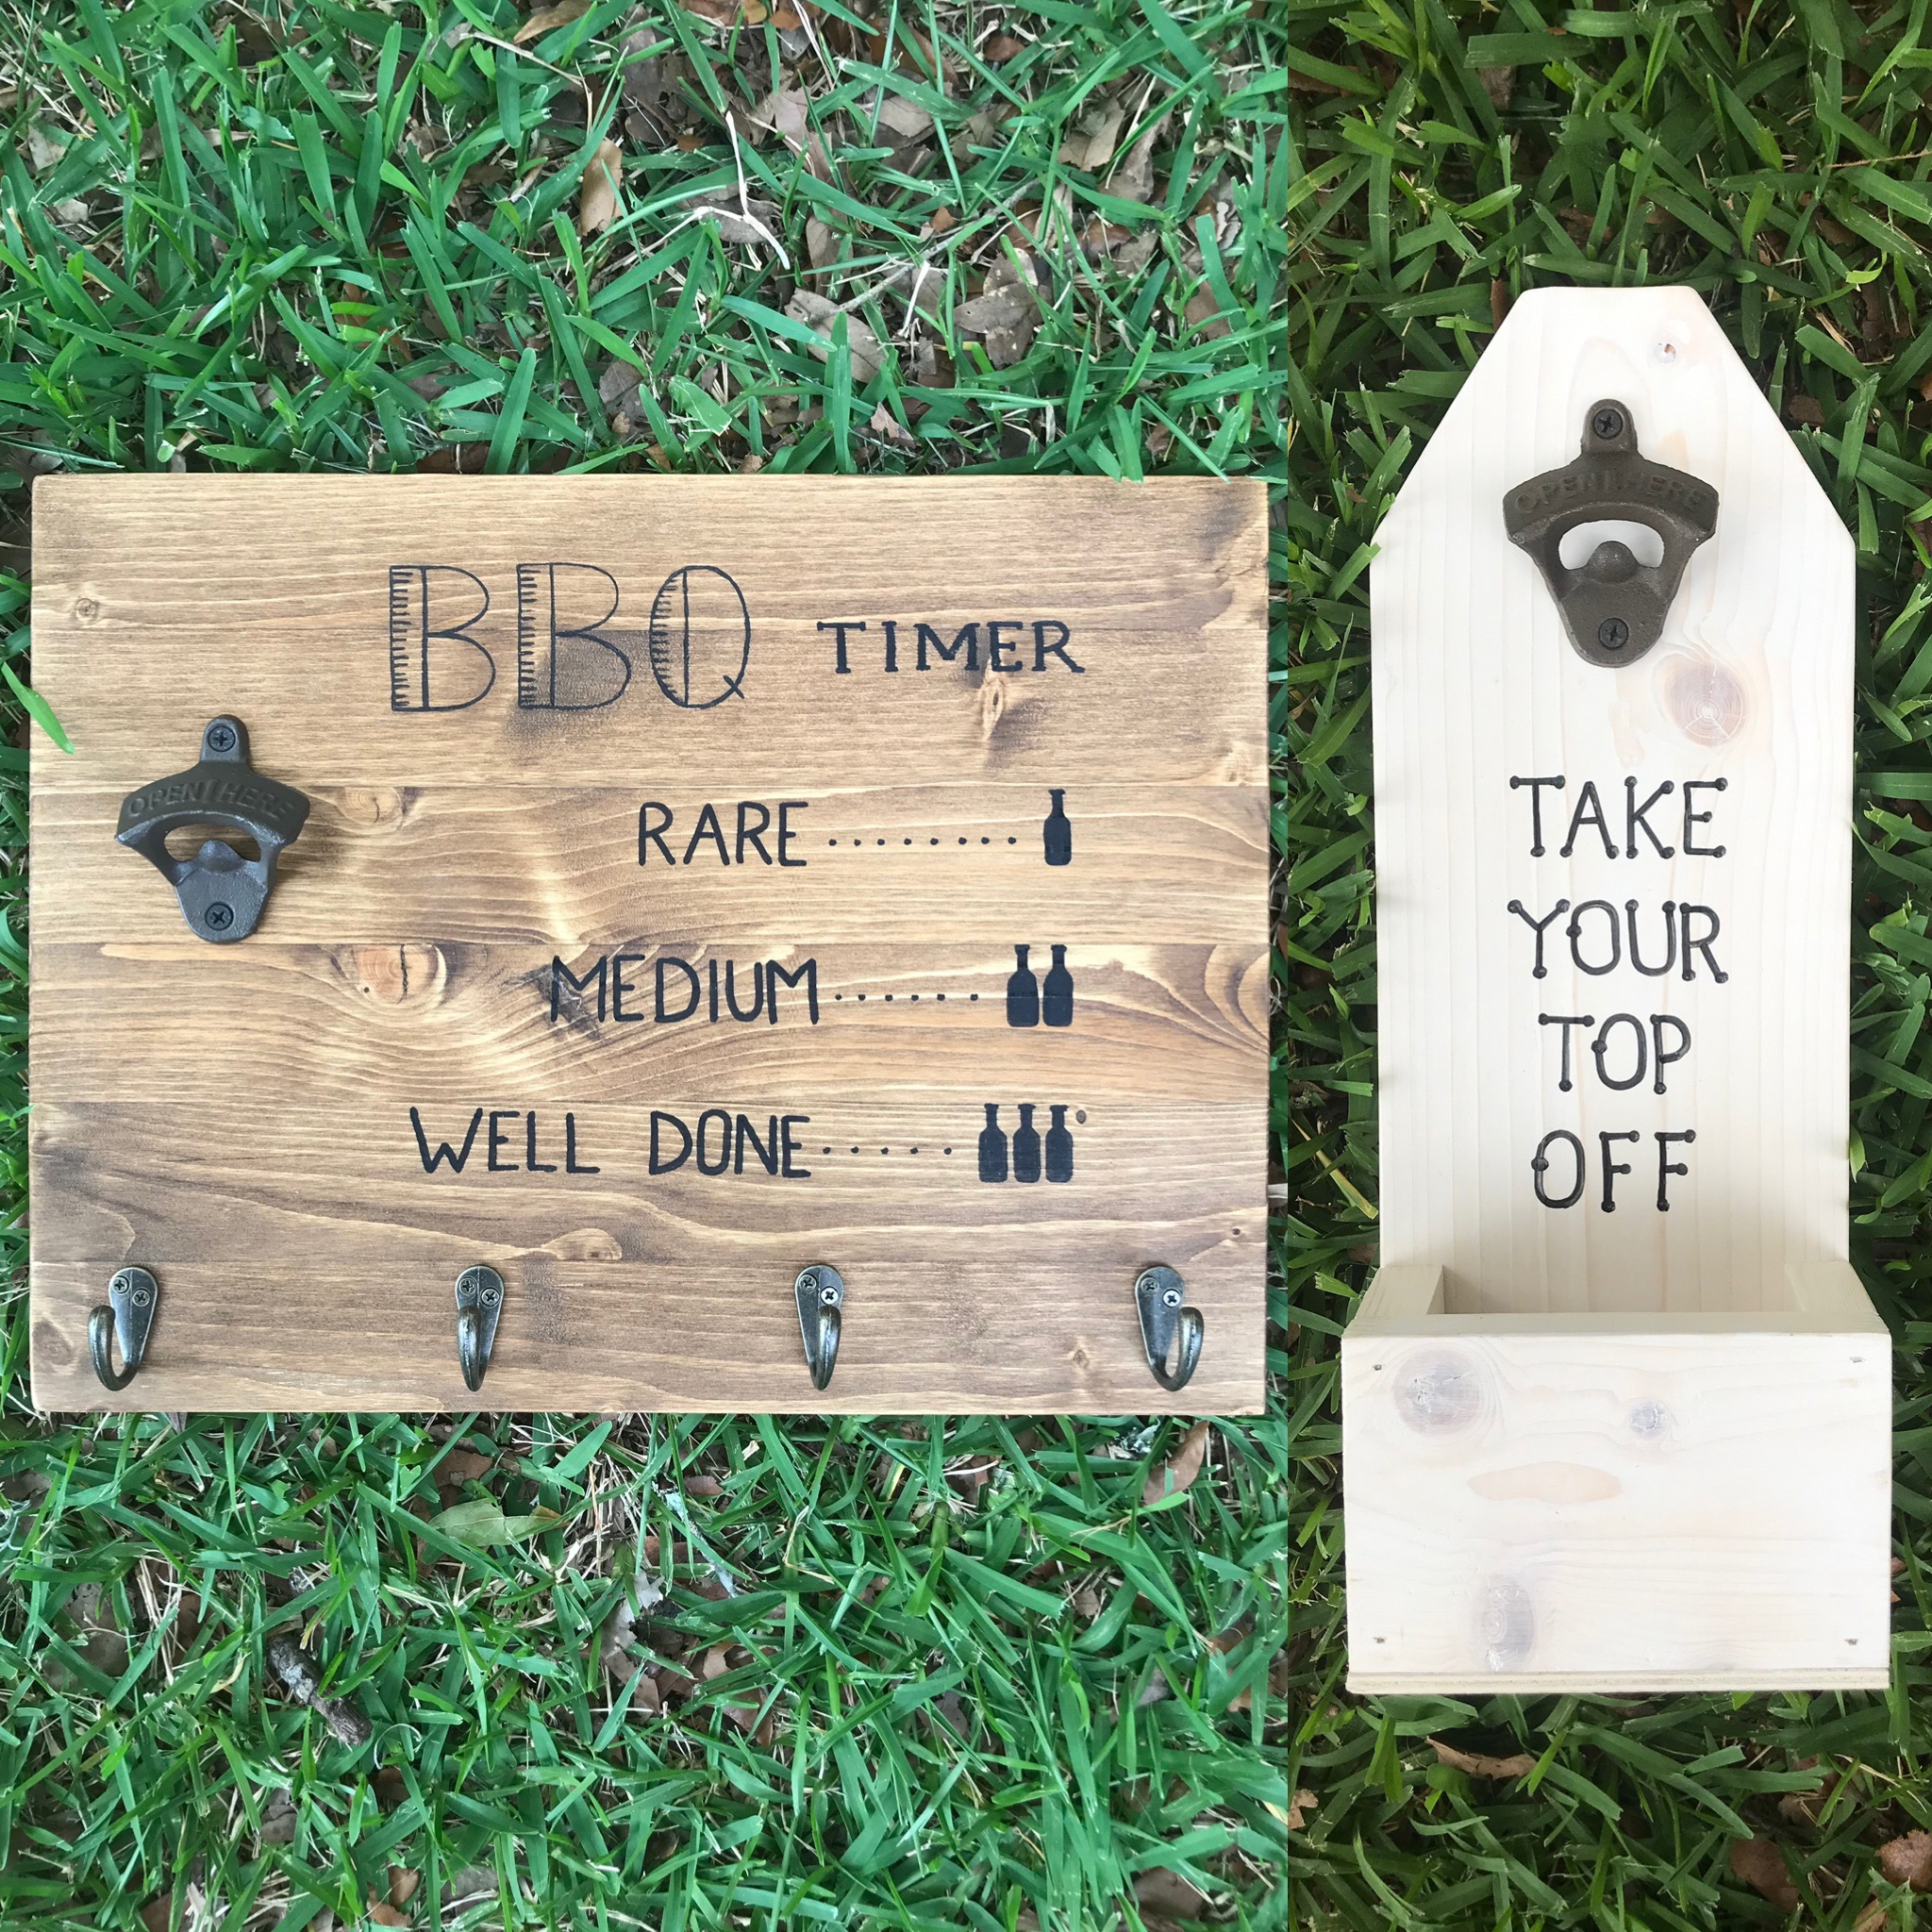 For the Love of Wood Handcrafted Gifts